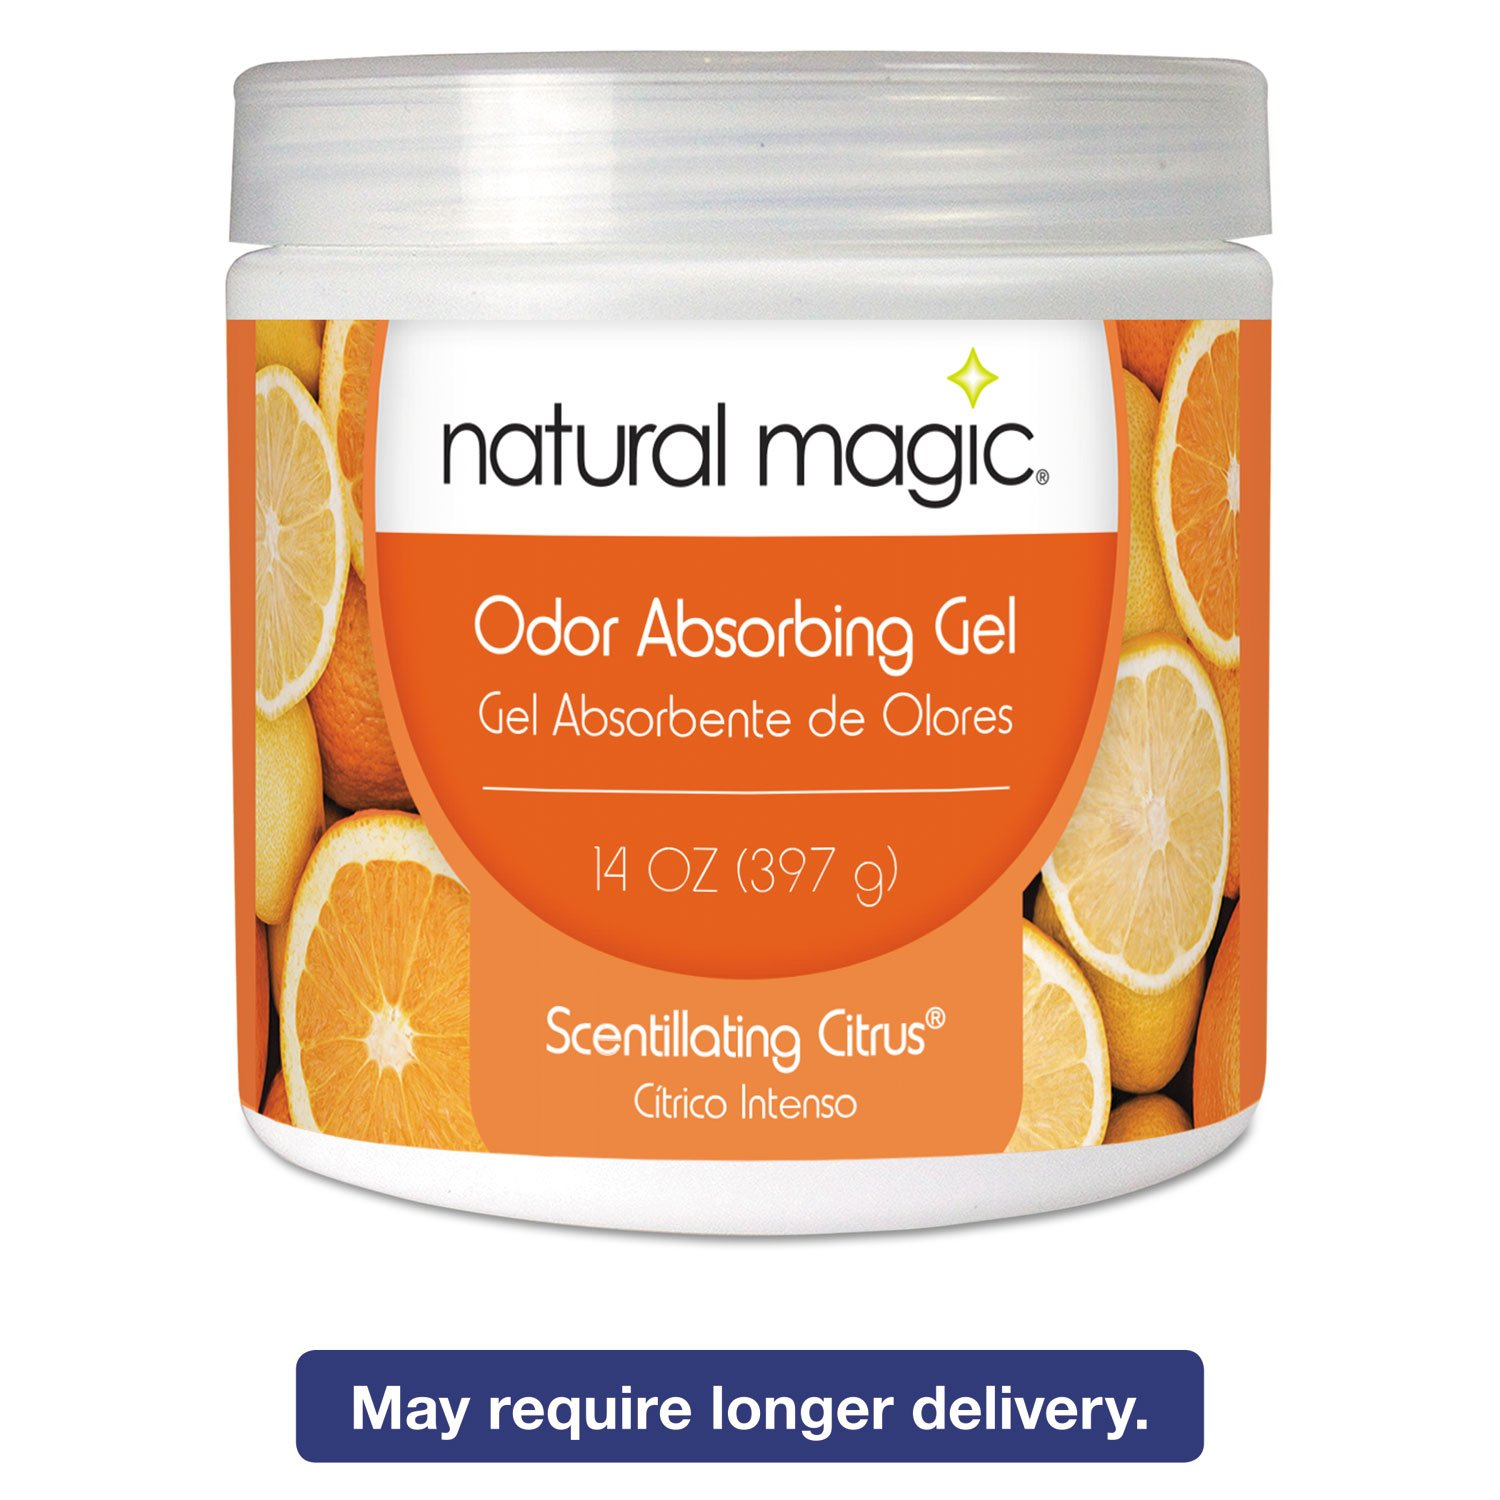 Natural Magic 4119DEA Odor Absorbing Gel, Scentillating Citrus, 14 oz Jar